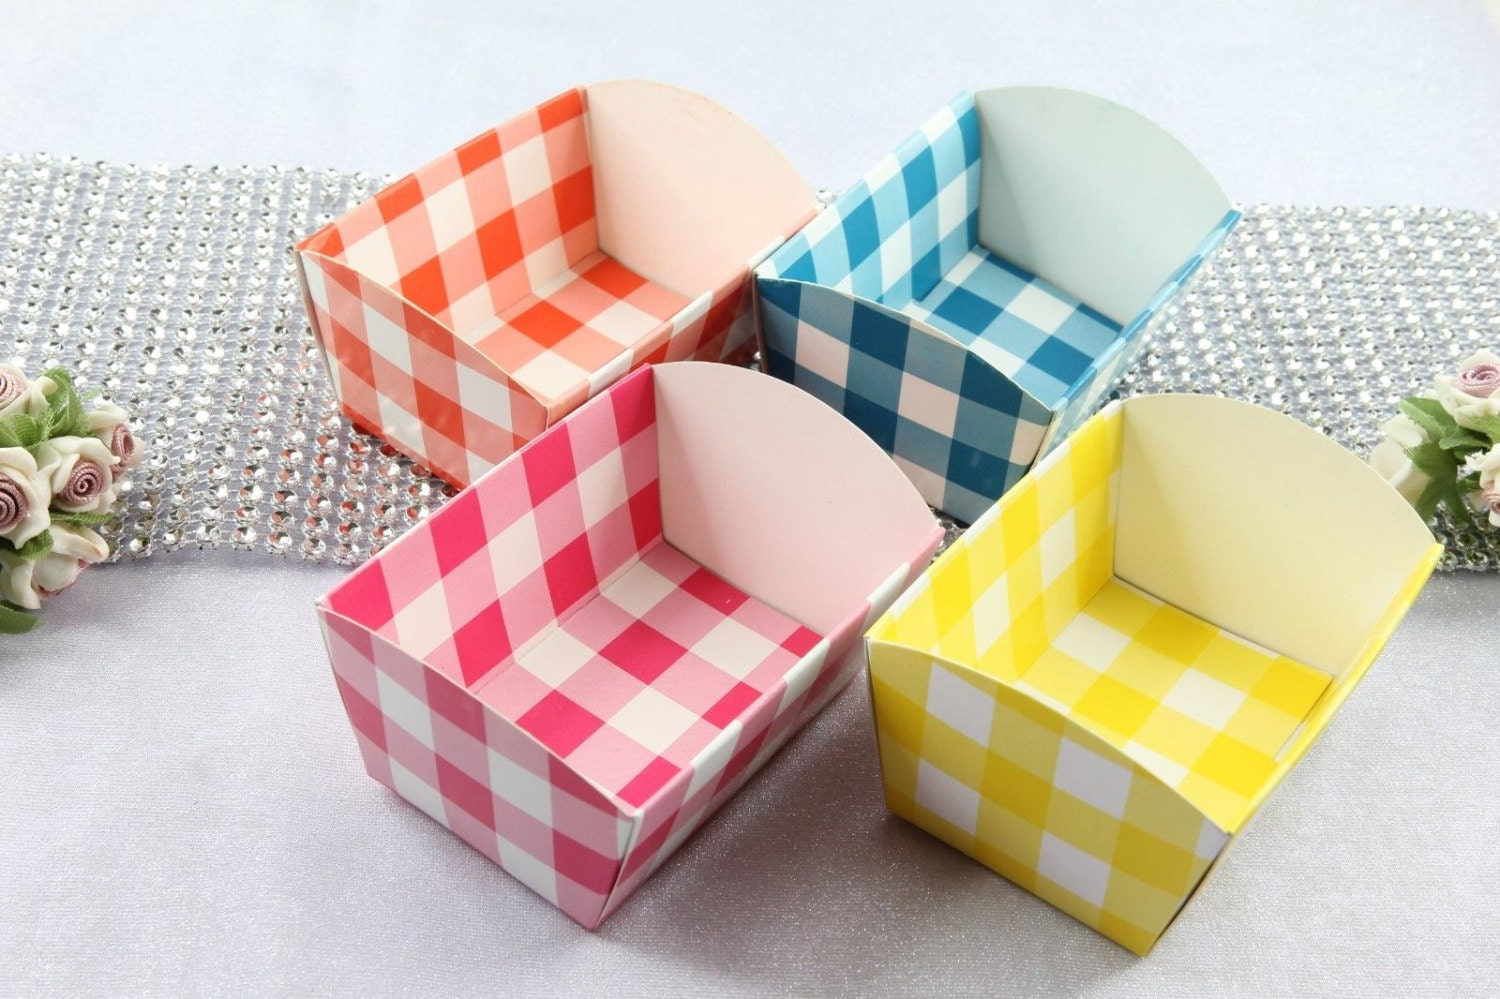 Mini Paper Candy Cup : Checker mini paper candy cups cookie nut tray holders party